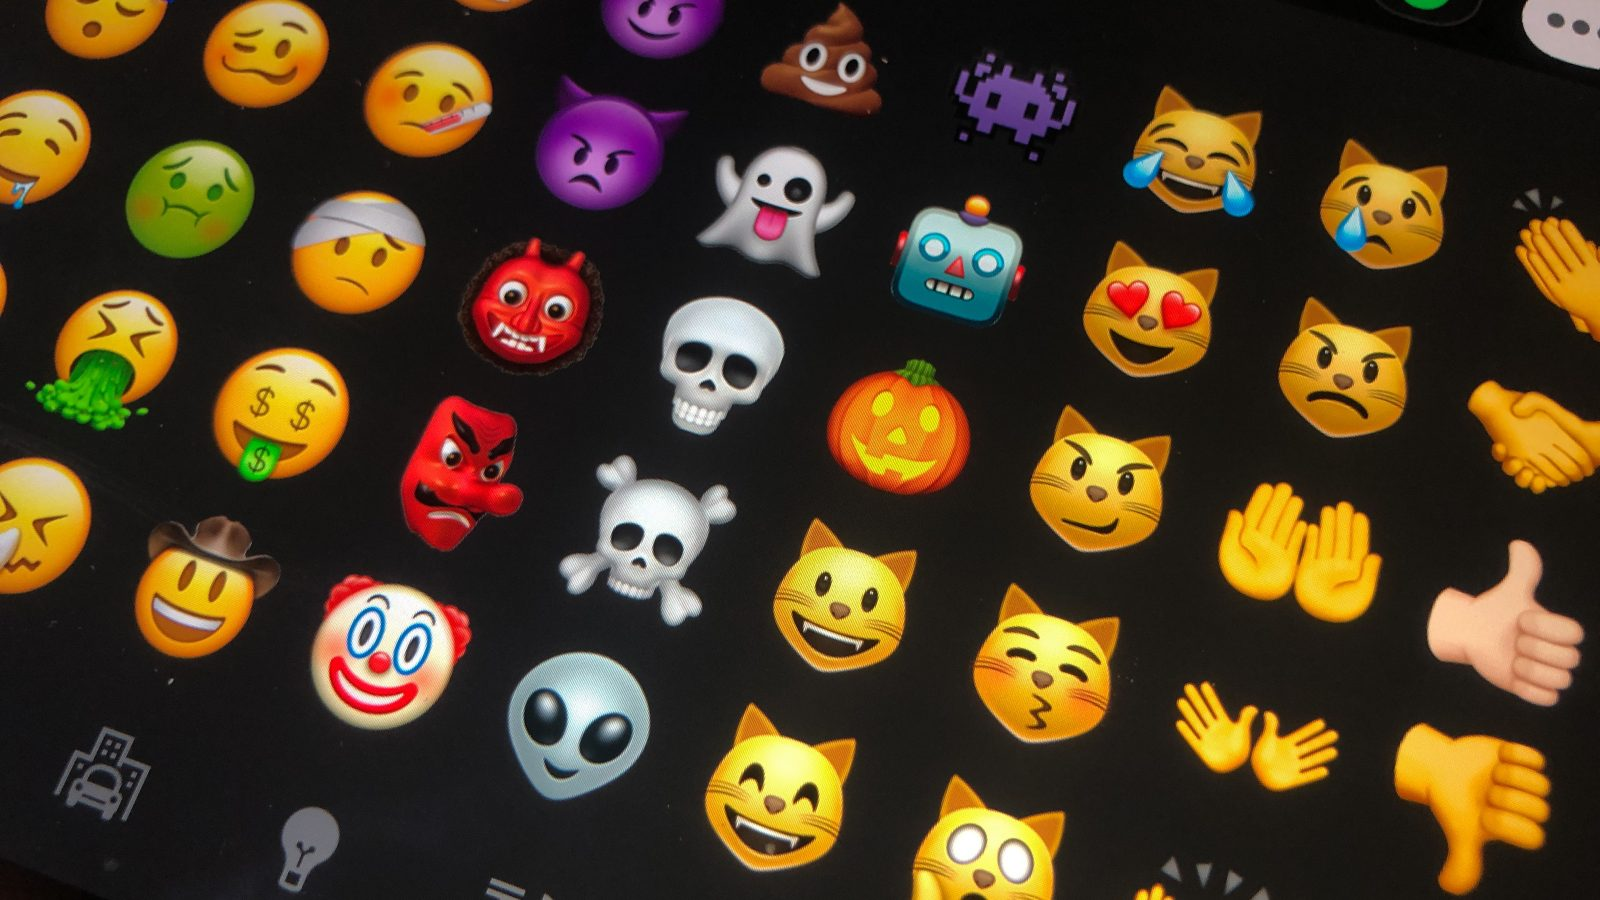 ⚠️ Caution! ⚠️ These emoji mean different things in different countries